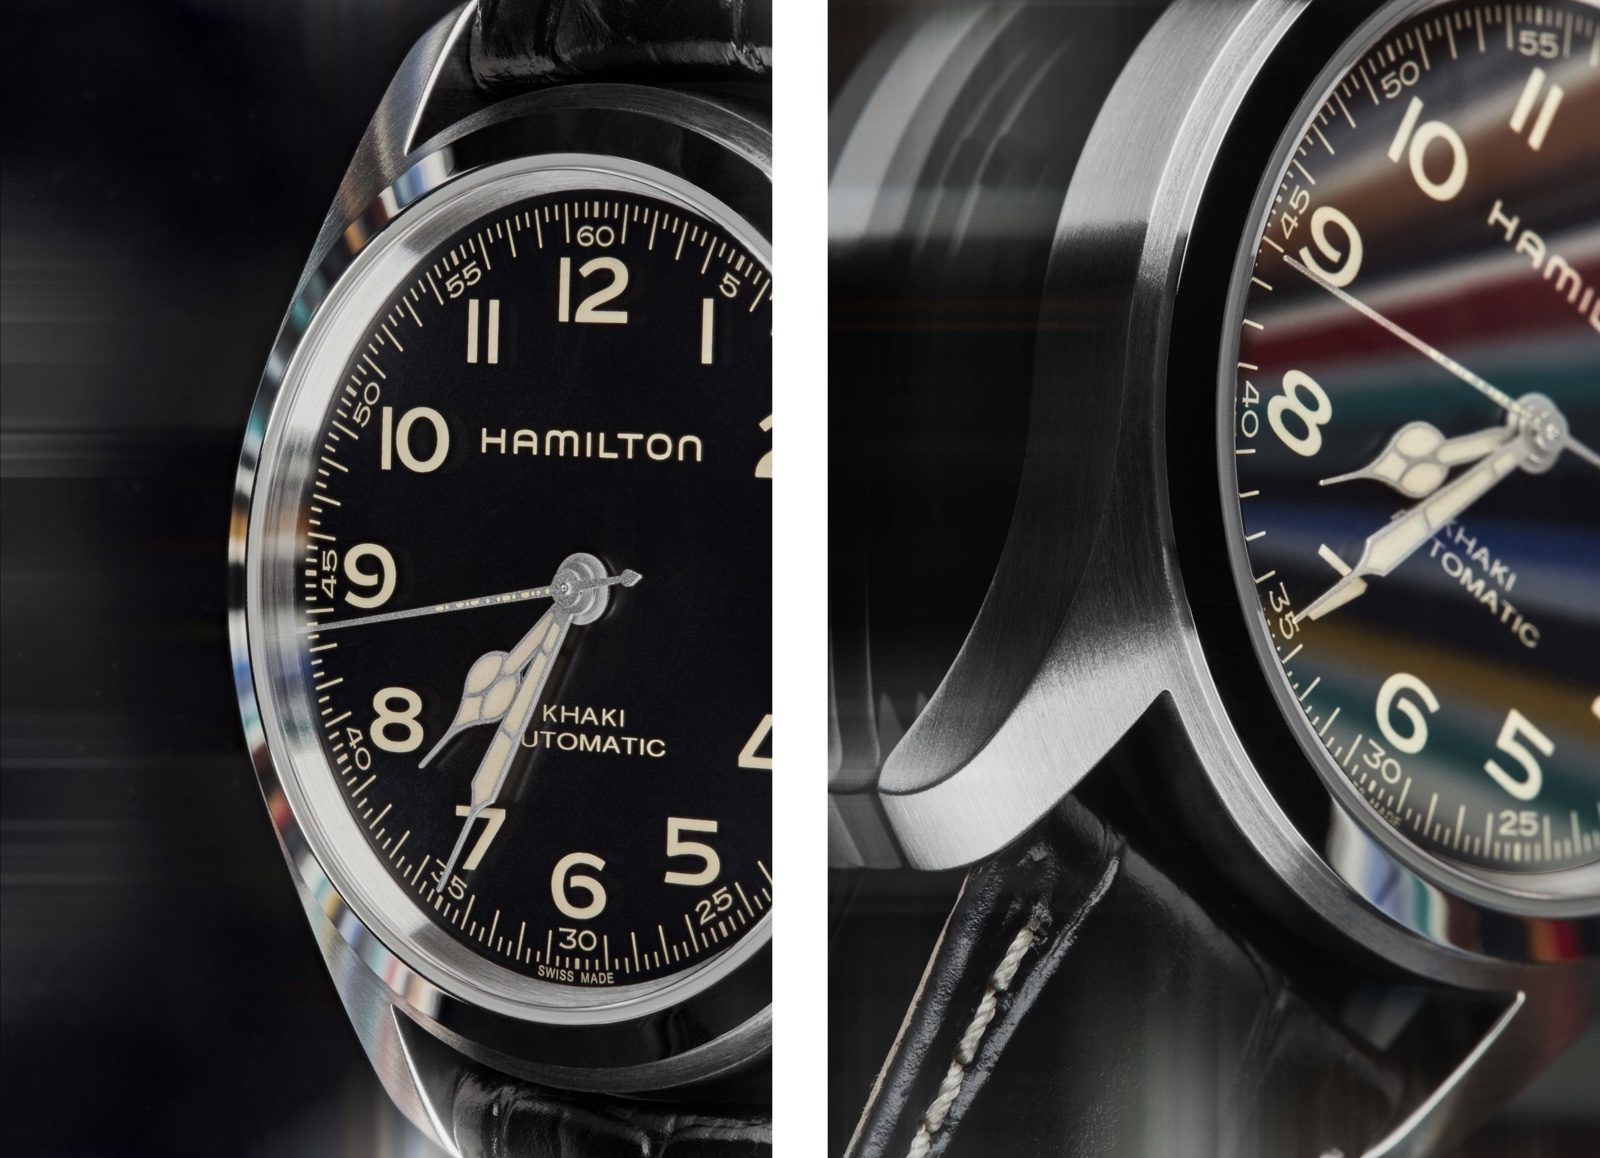 Test Watch Khaki MurphEl Hamilton Field Reloj Interstellar⋆ rQoedCBWxE